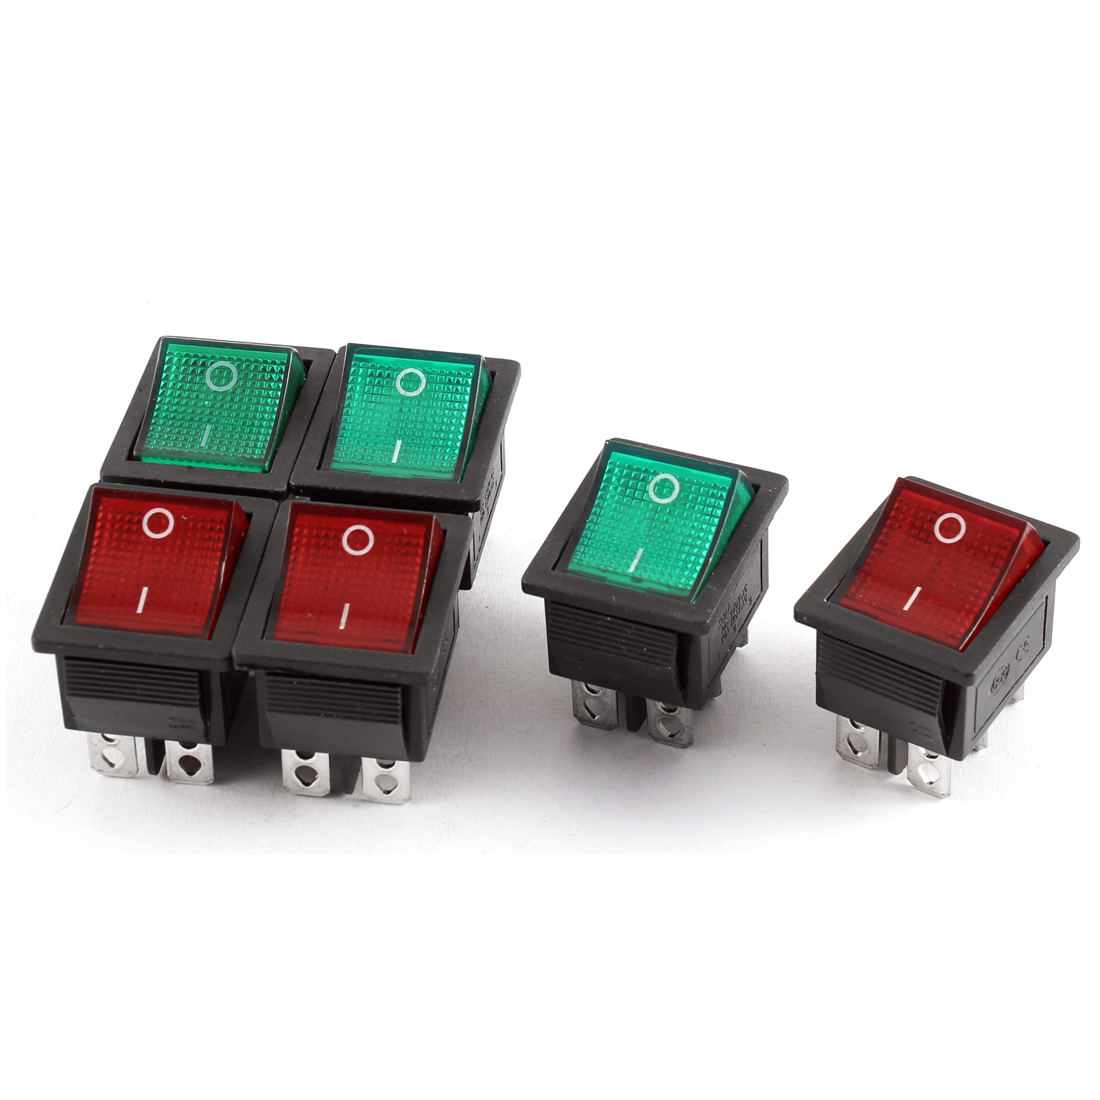 AC 125V/20A 250V/15A 2 Position 6 Terminals DPDT Rocker Boat Switch 6 Pcs Green Red